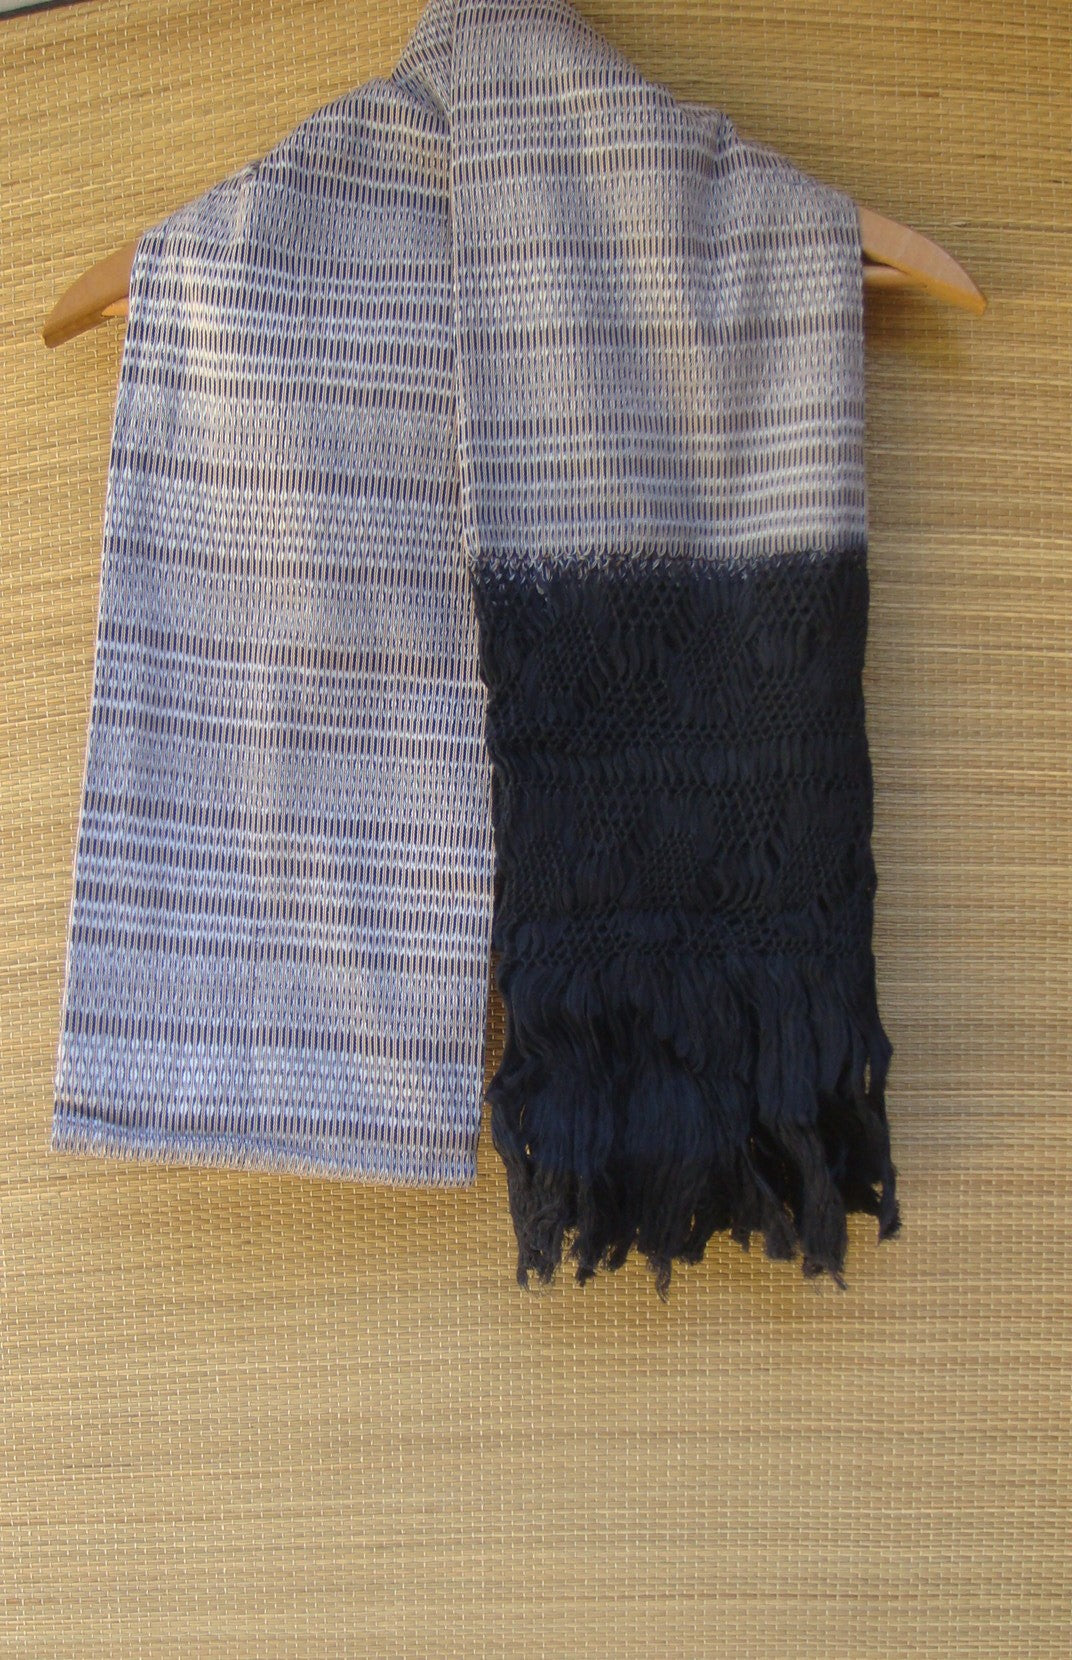 Mexican Handwoven Brown Rebozo Sarape Shawl Wrap Pareo Scarf Runner From Tenancingo